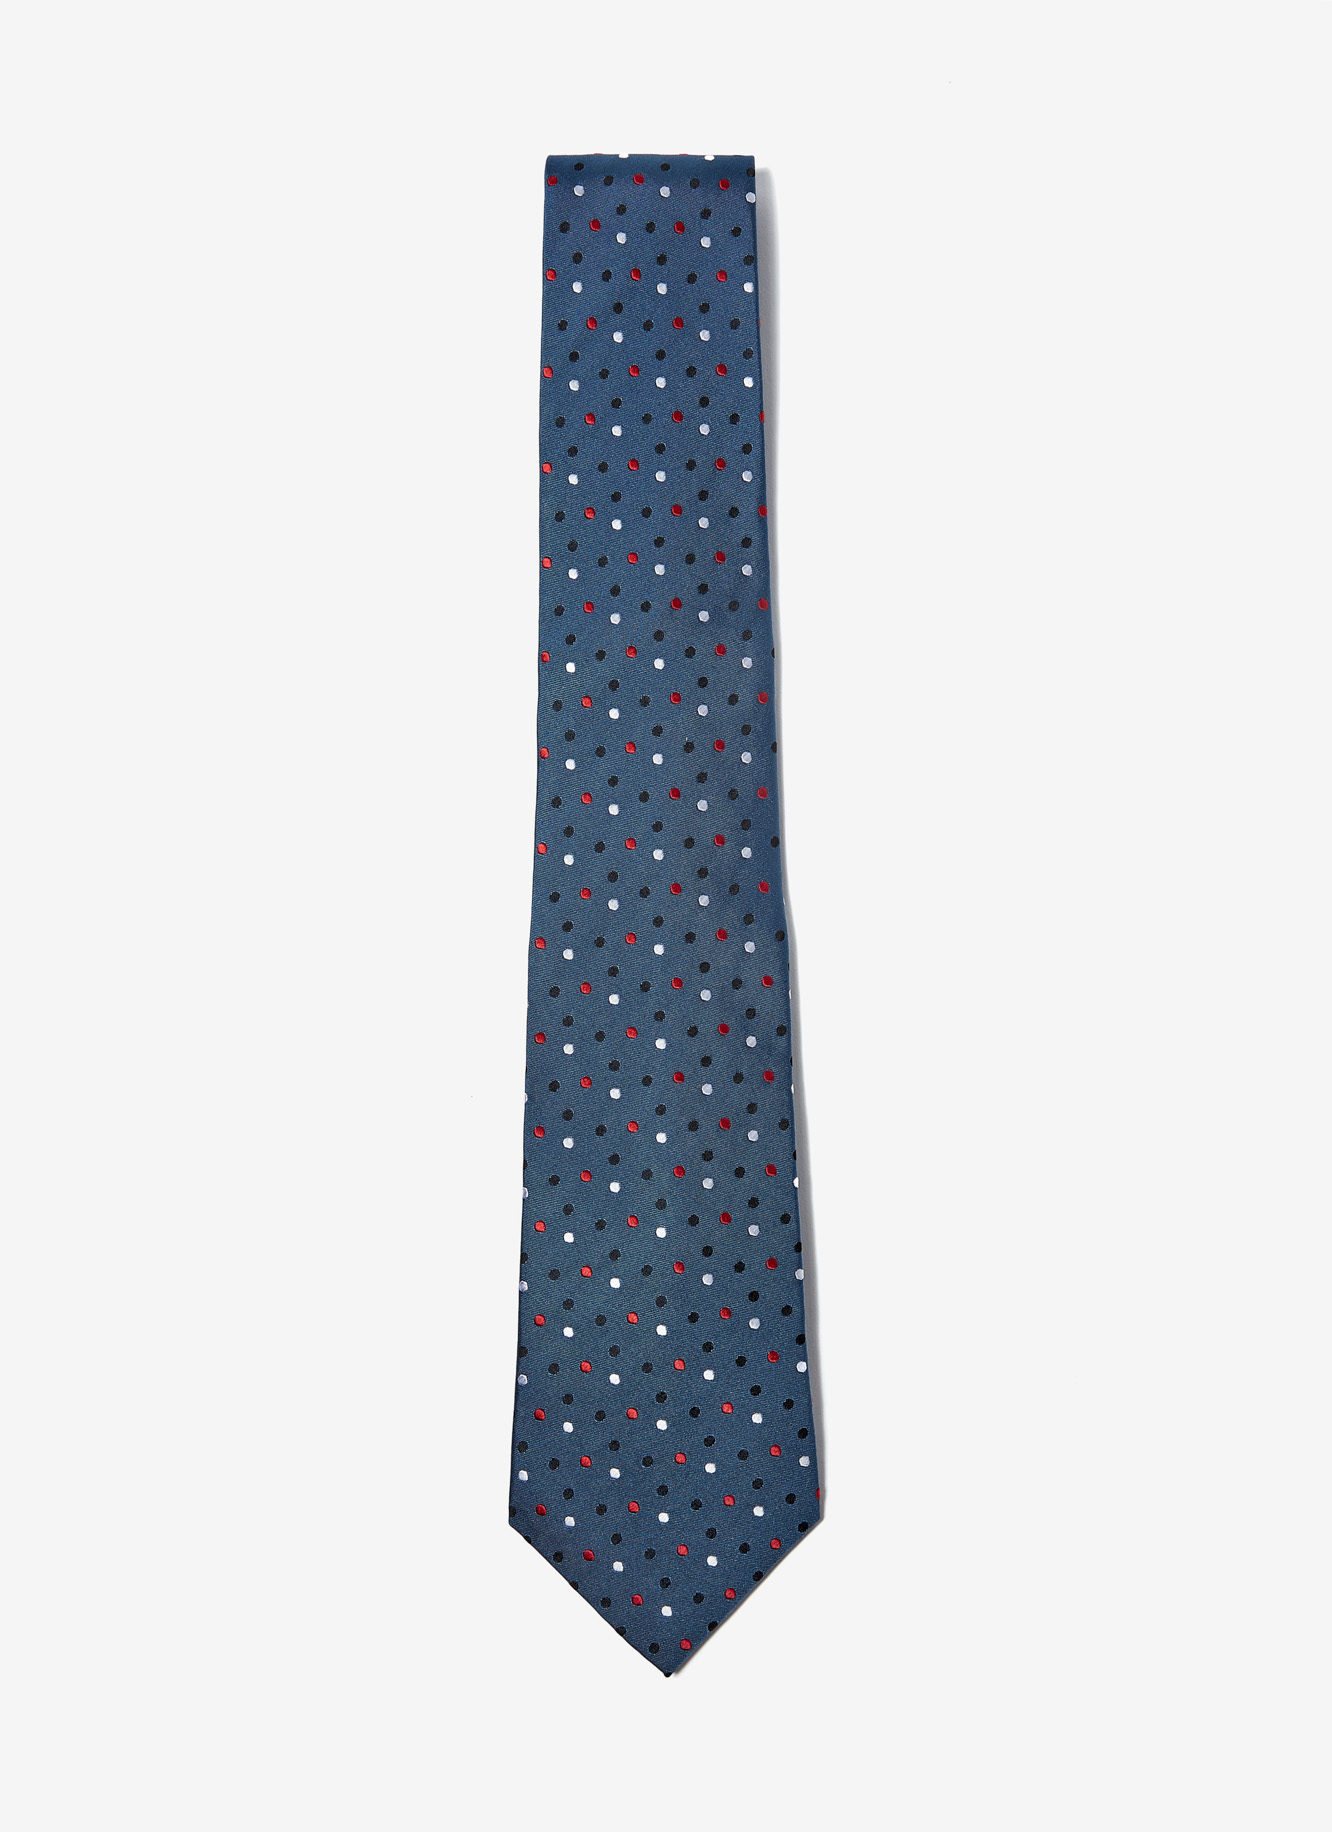 SILK TIE WITH POLKA DOTS